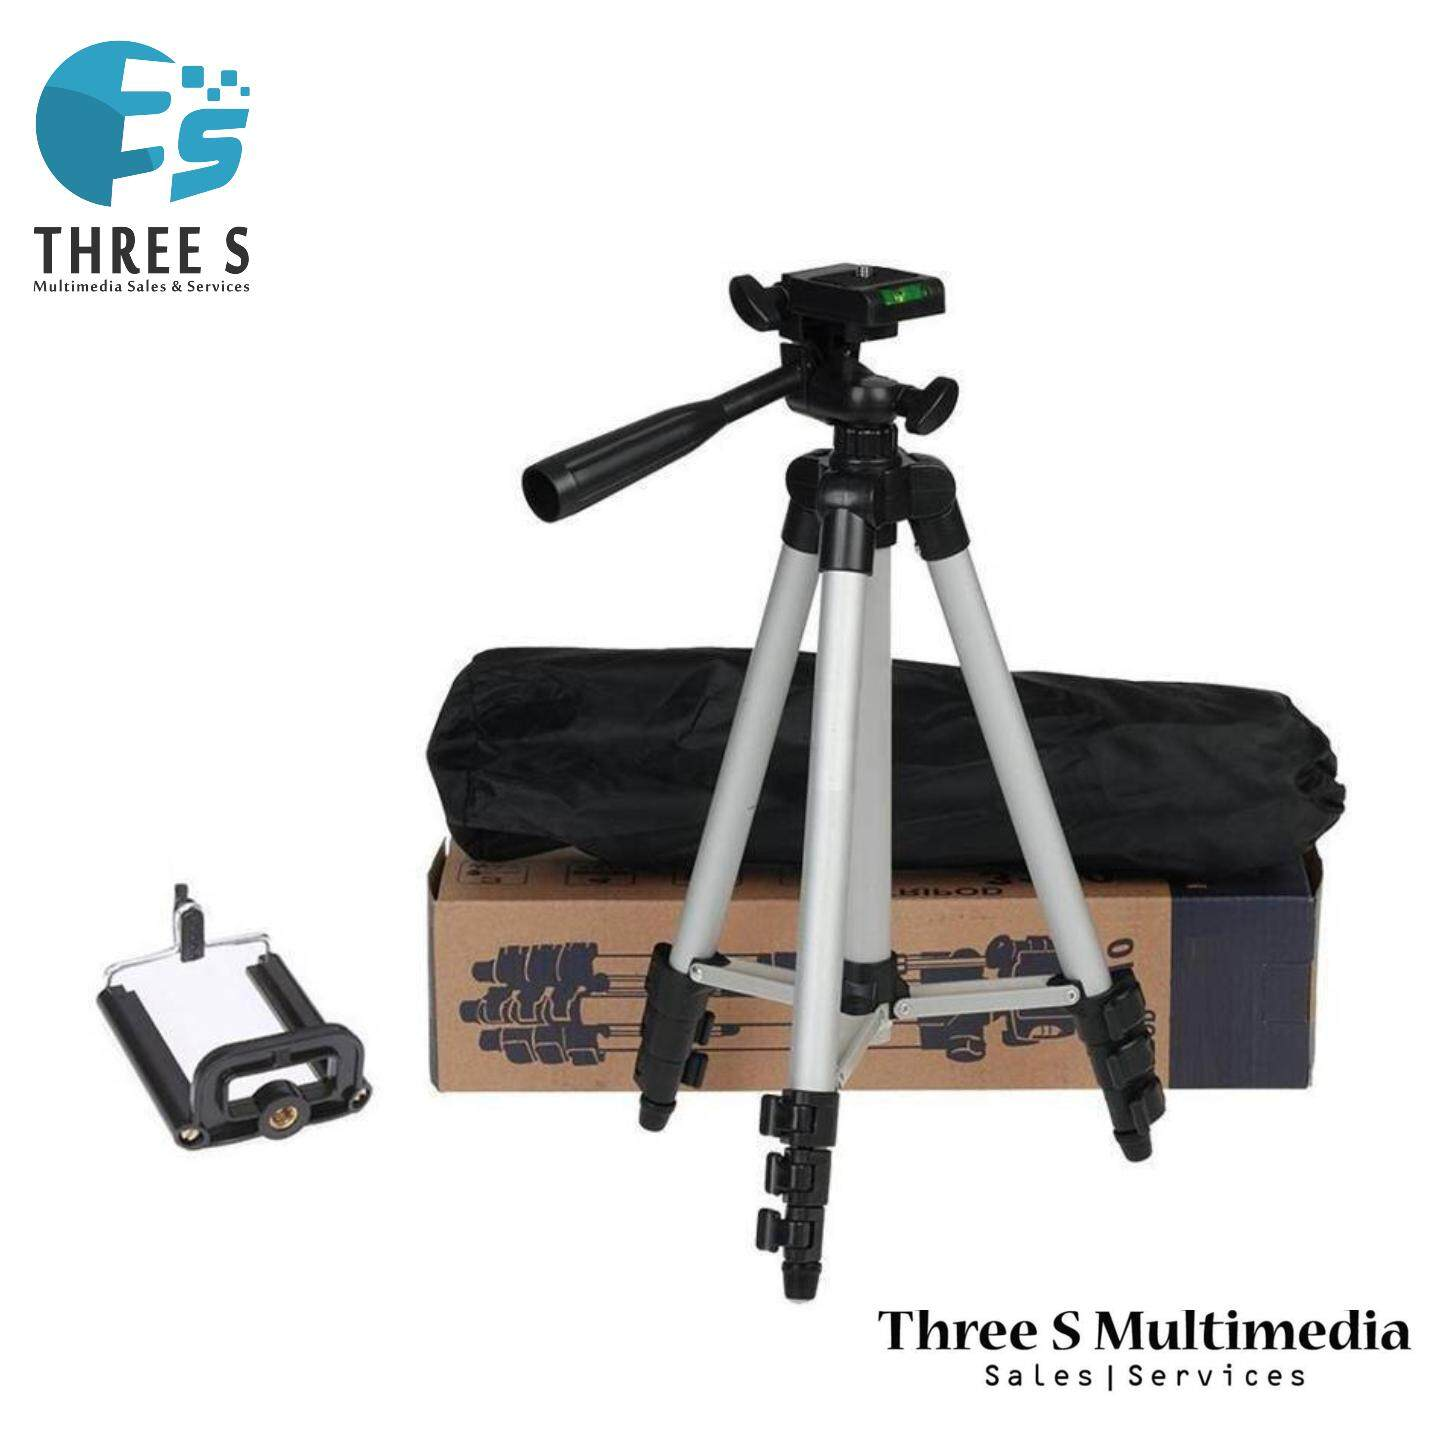 Tripod-3110 Lightweight Camera Stand With Three-Dimensional Head